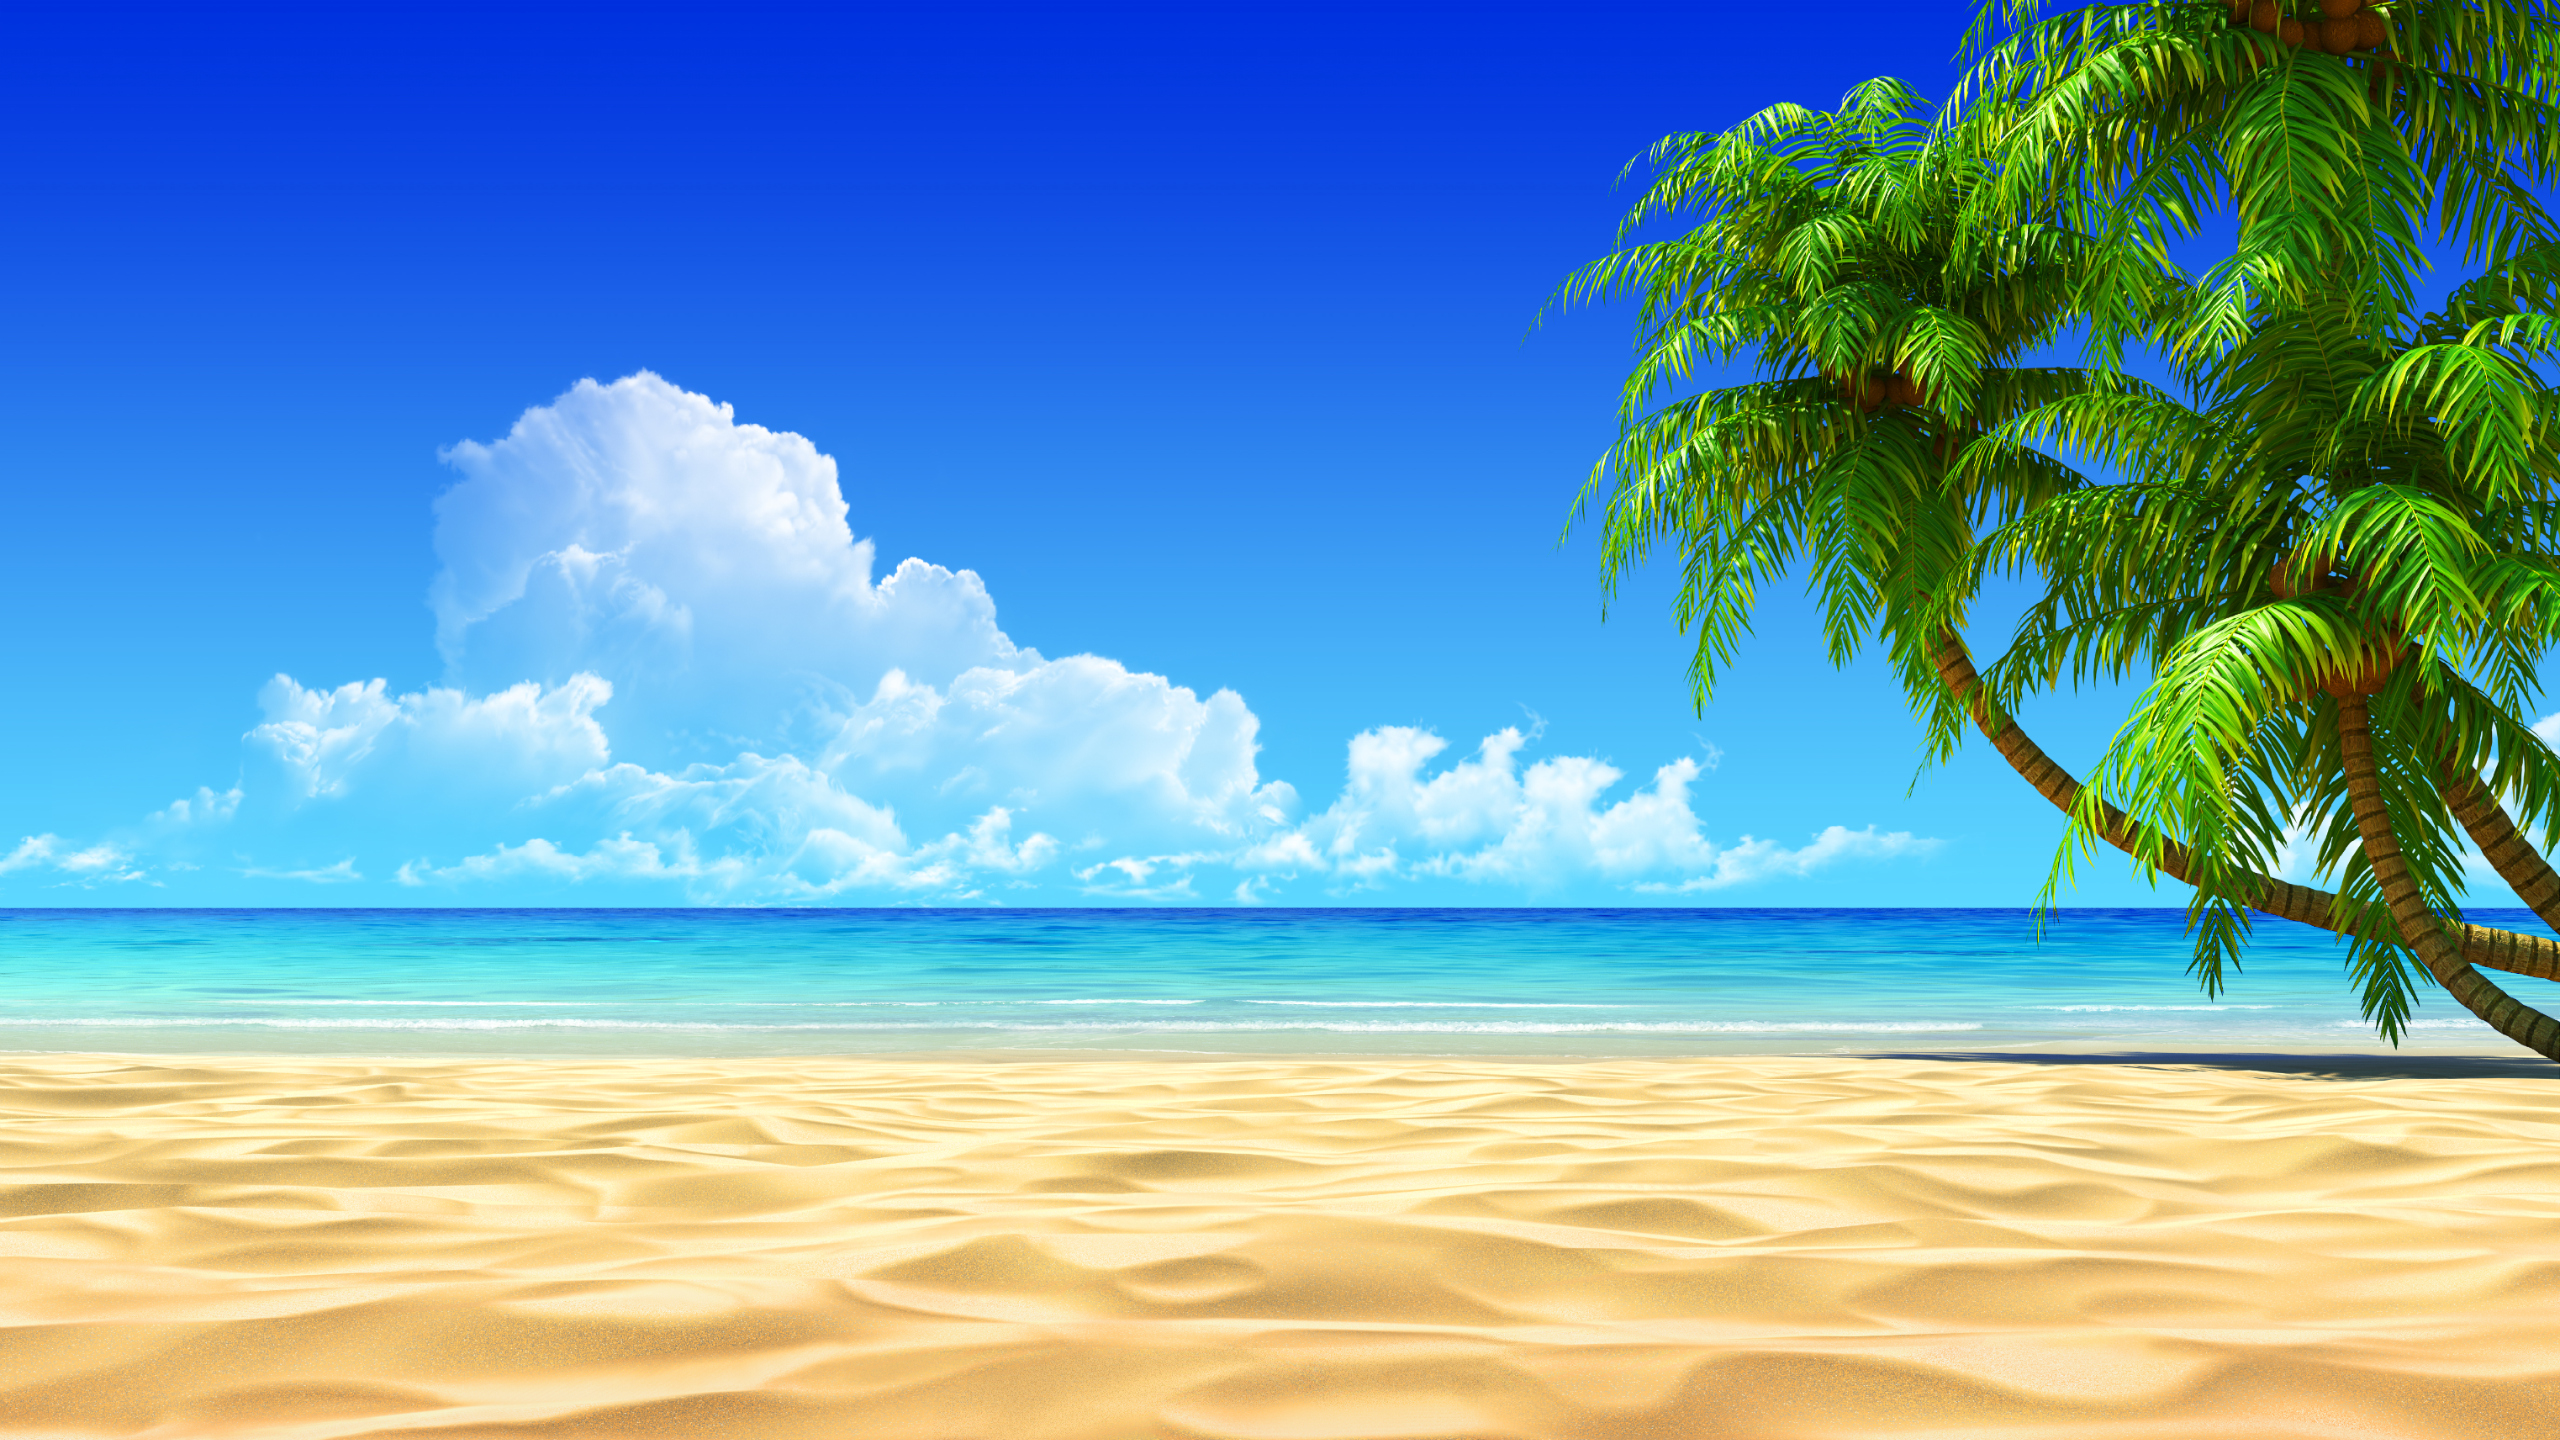 Tropical beach clipart wallpaper.